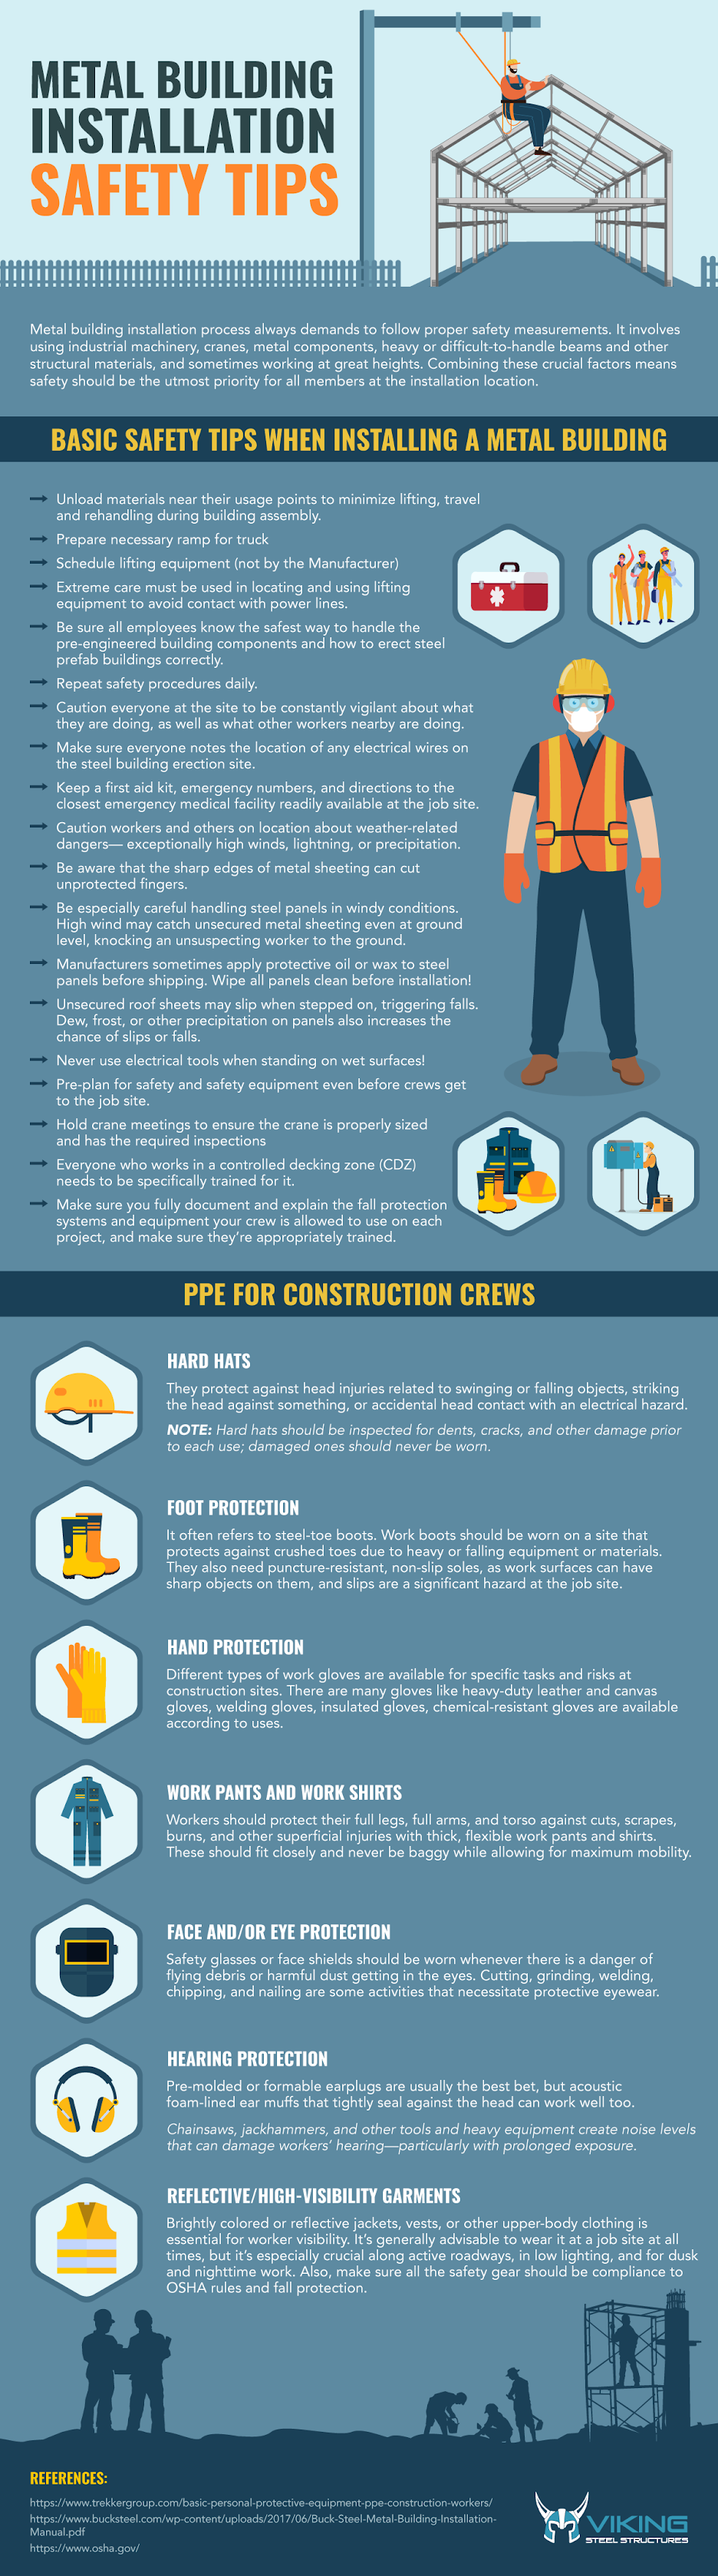 Metal Building Installation Safety Tips #infographic #Construction #infographics #Metal Building #Safety Tips